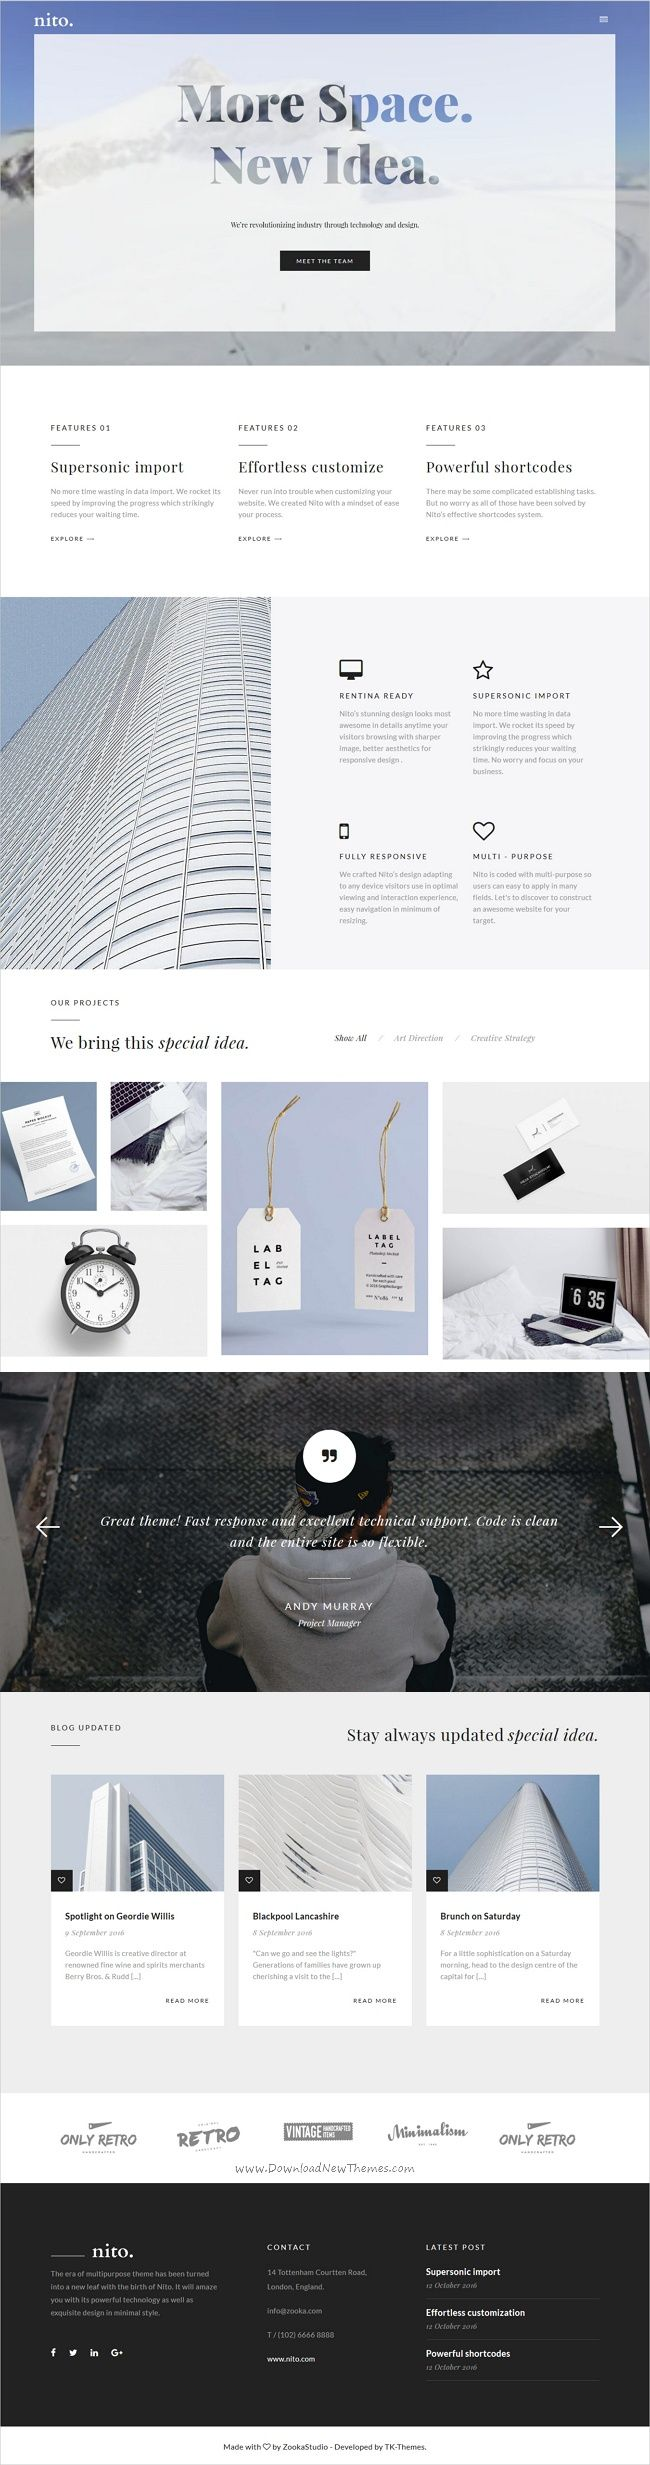 Nito is a versatile responsive #HTML5 bootstrap #template for stunning #studio website with 21+ multipurpose homepage layouts download now➩  https://themeforest.net/item/nito-a-clean-minimal-multipurpose-html-template/19291489?ref=Datasata